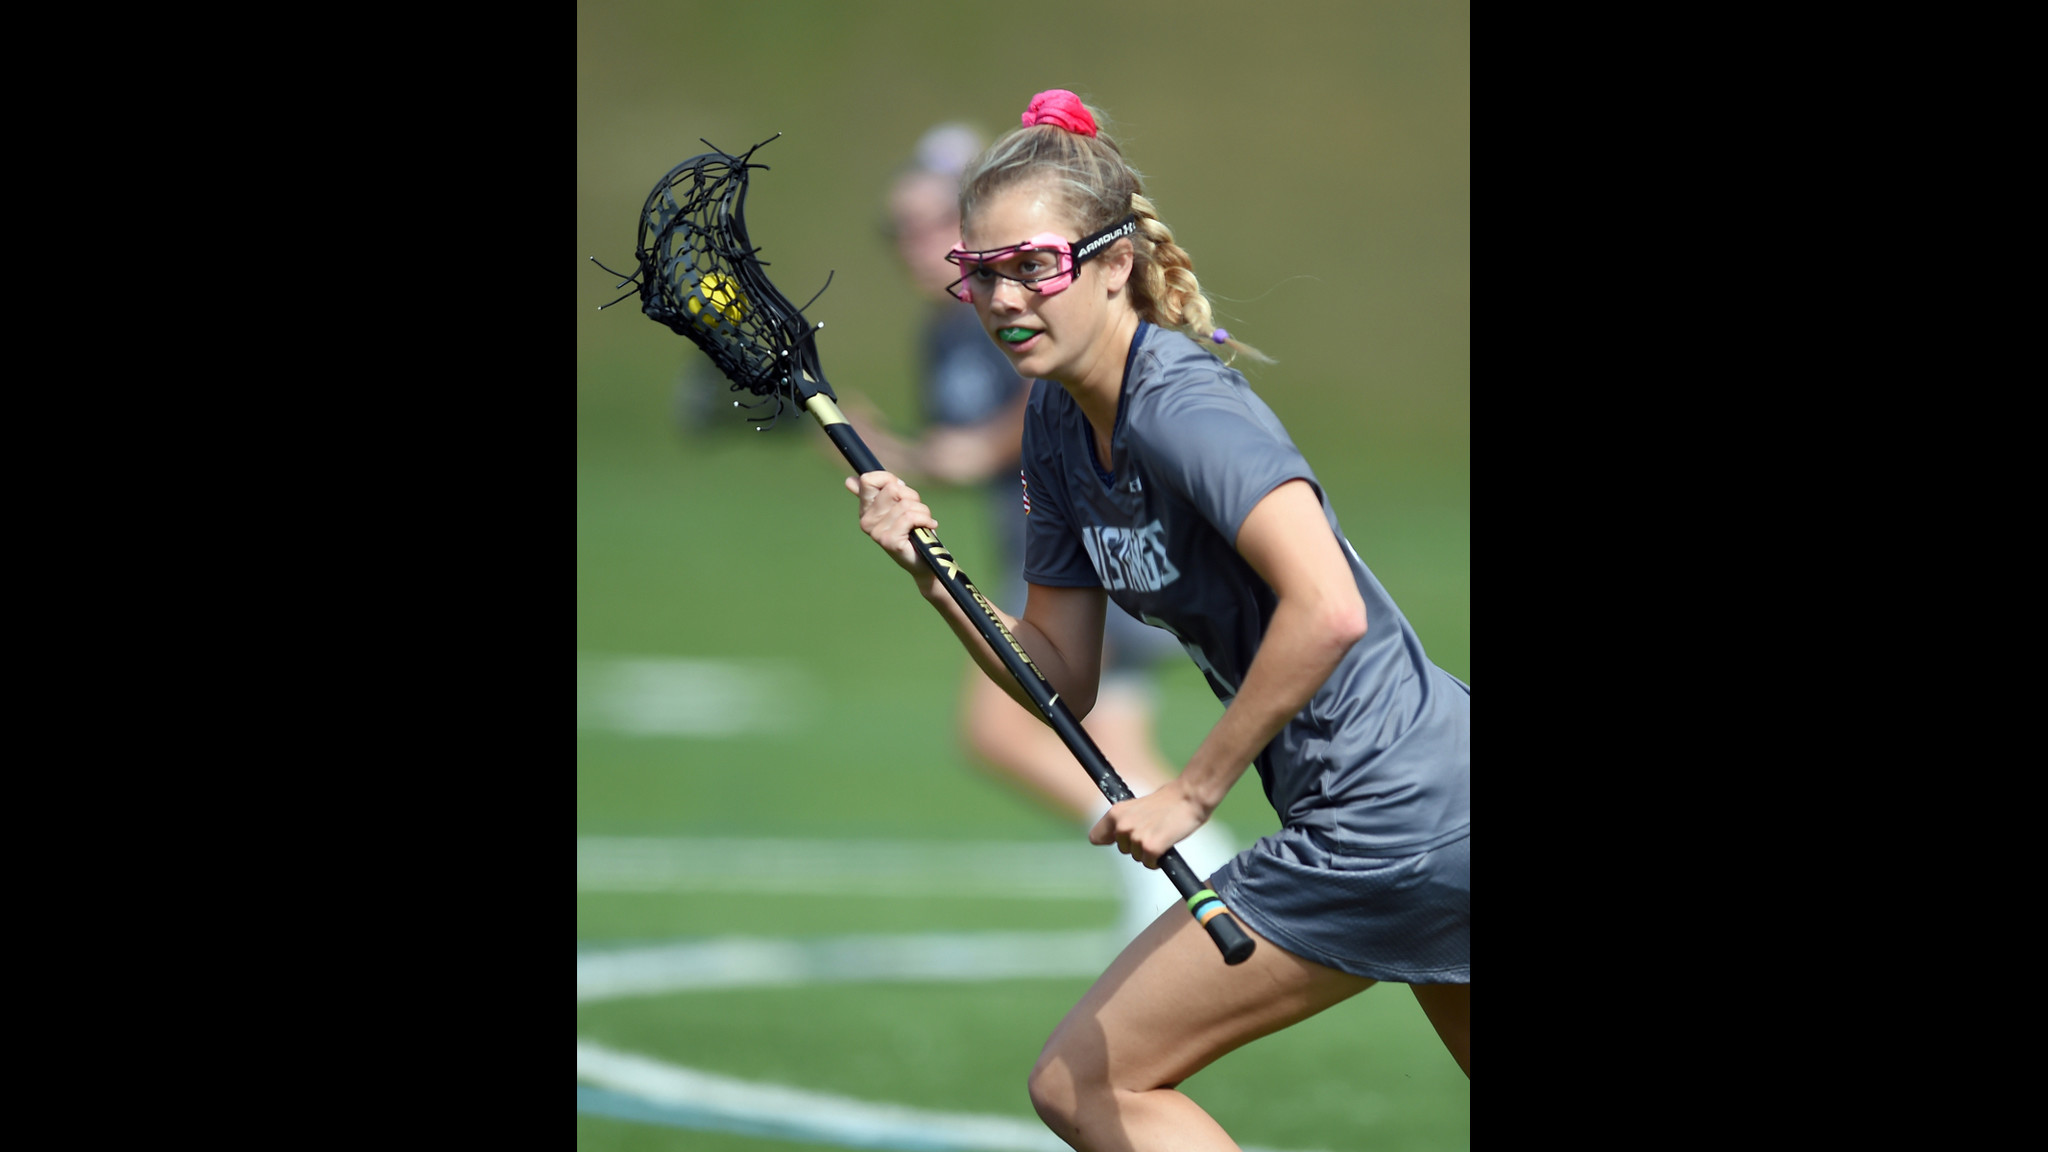 Amanda Rosa Play Boy notre dame prep pulls away for 15-9 victory over marriotts